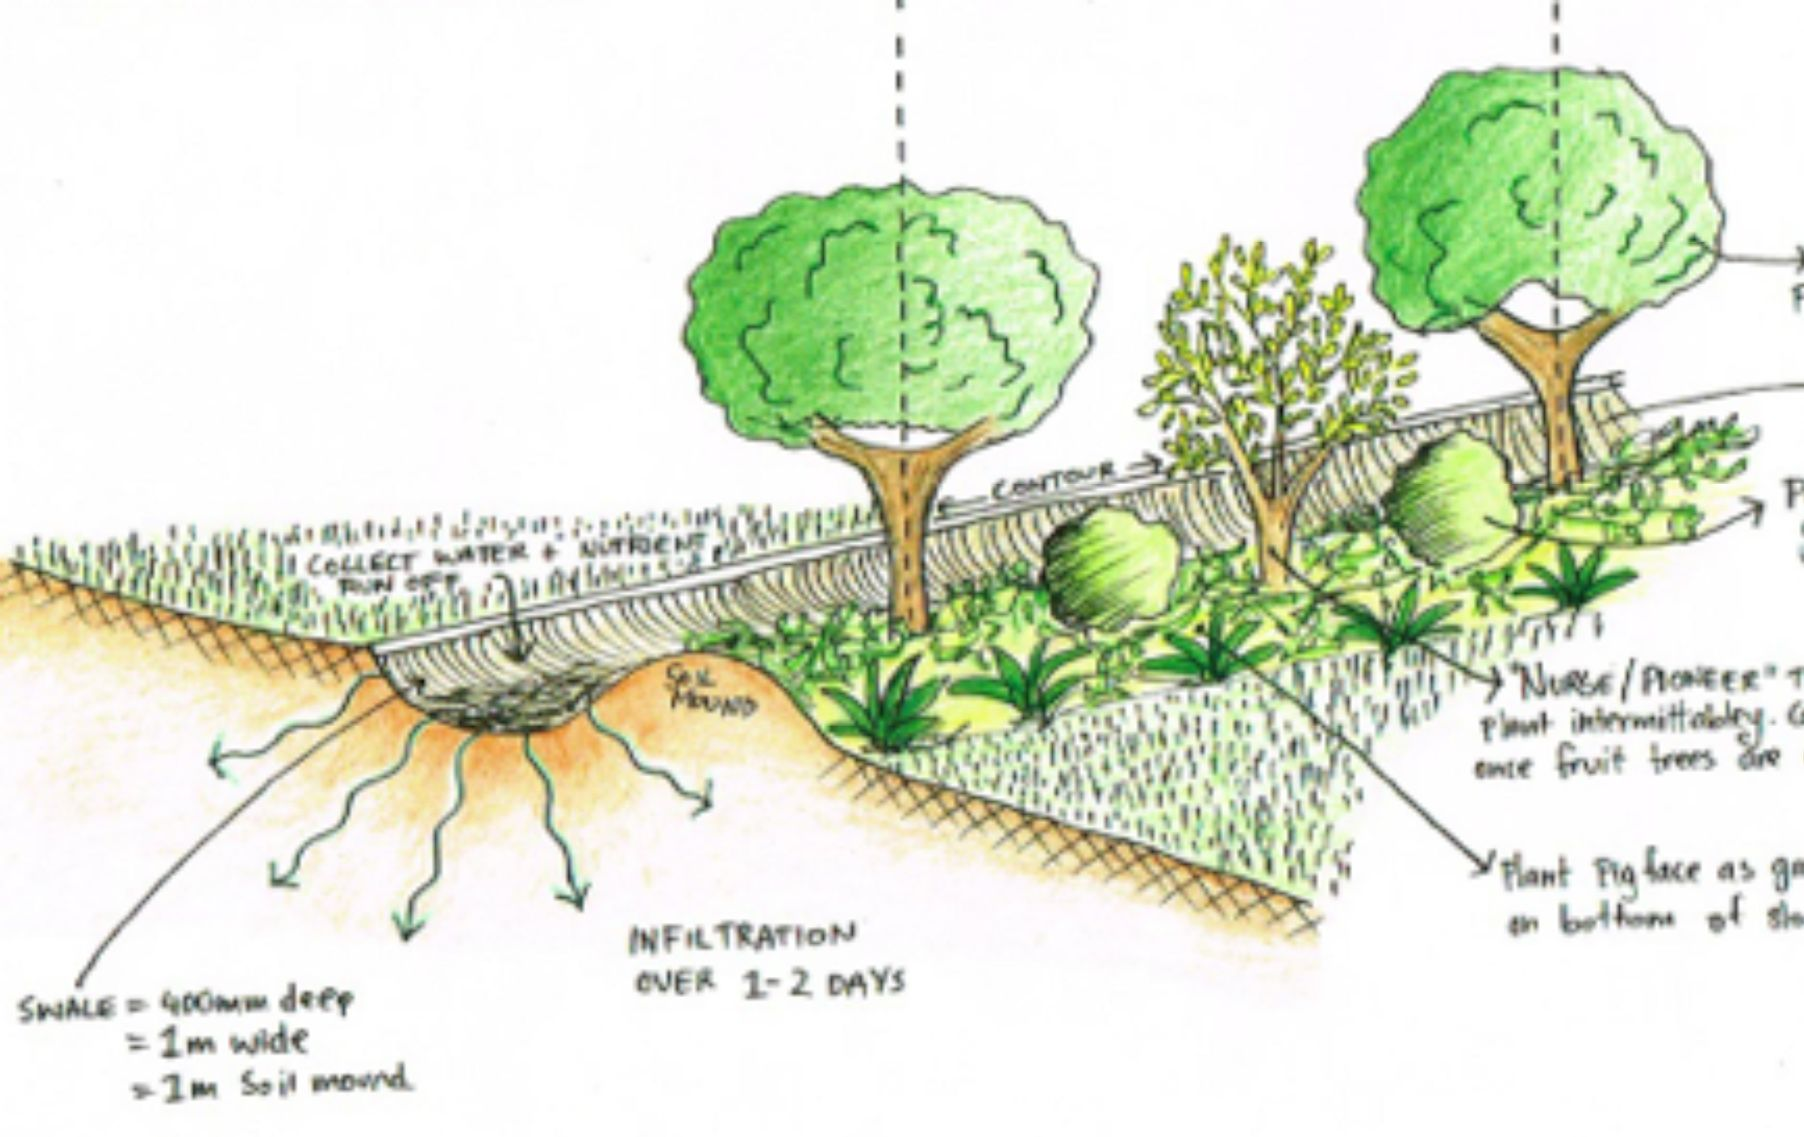 Swales on contour water harvesting archives good life for Design of stabilization pond